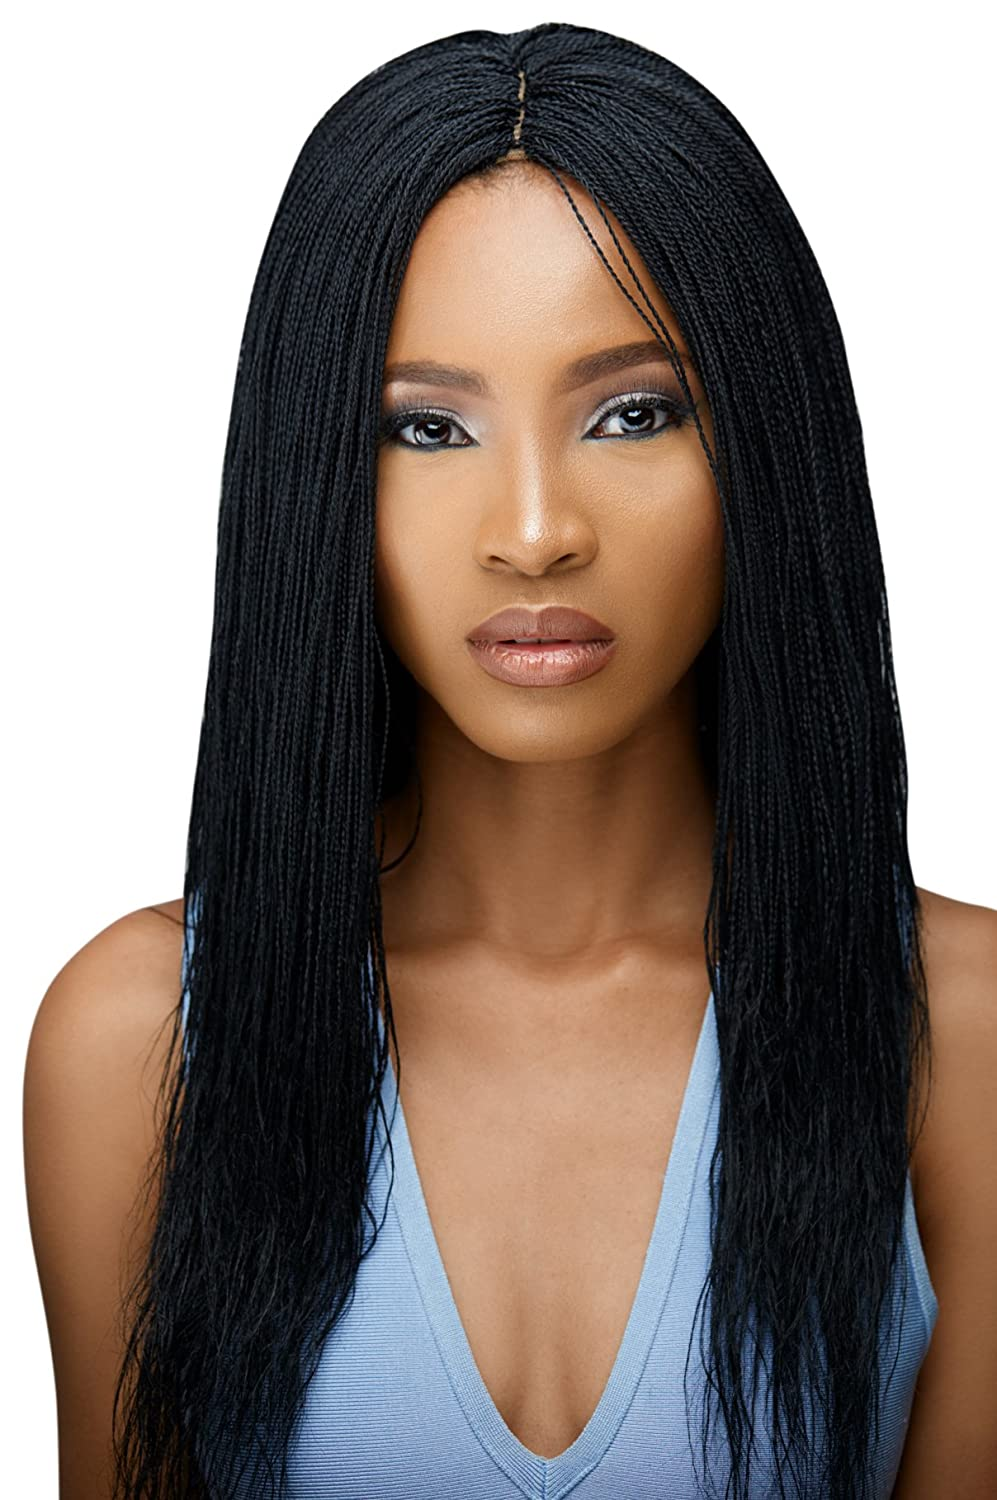 Miraculous Amazon Com Micro Million Twist Wig Color 1 18 Inches Beauty Schematic Wiring Diagrams Amerangerunnerswayorg